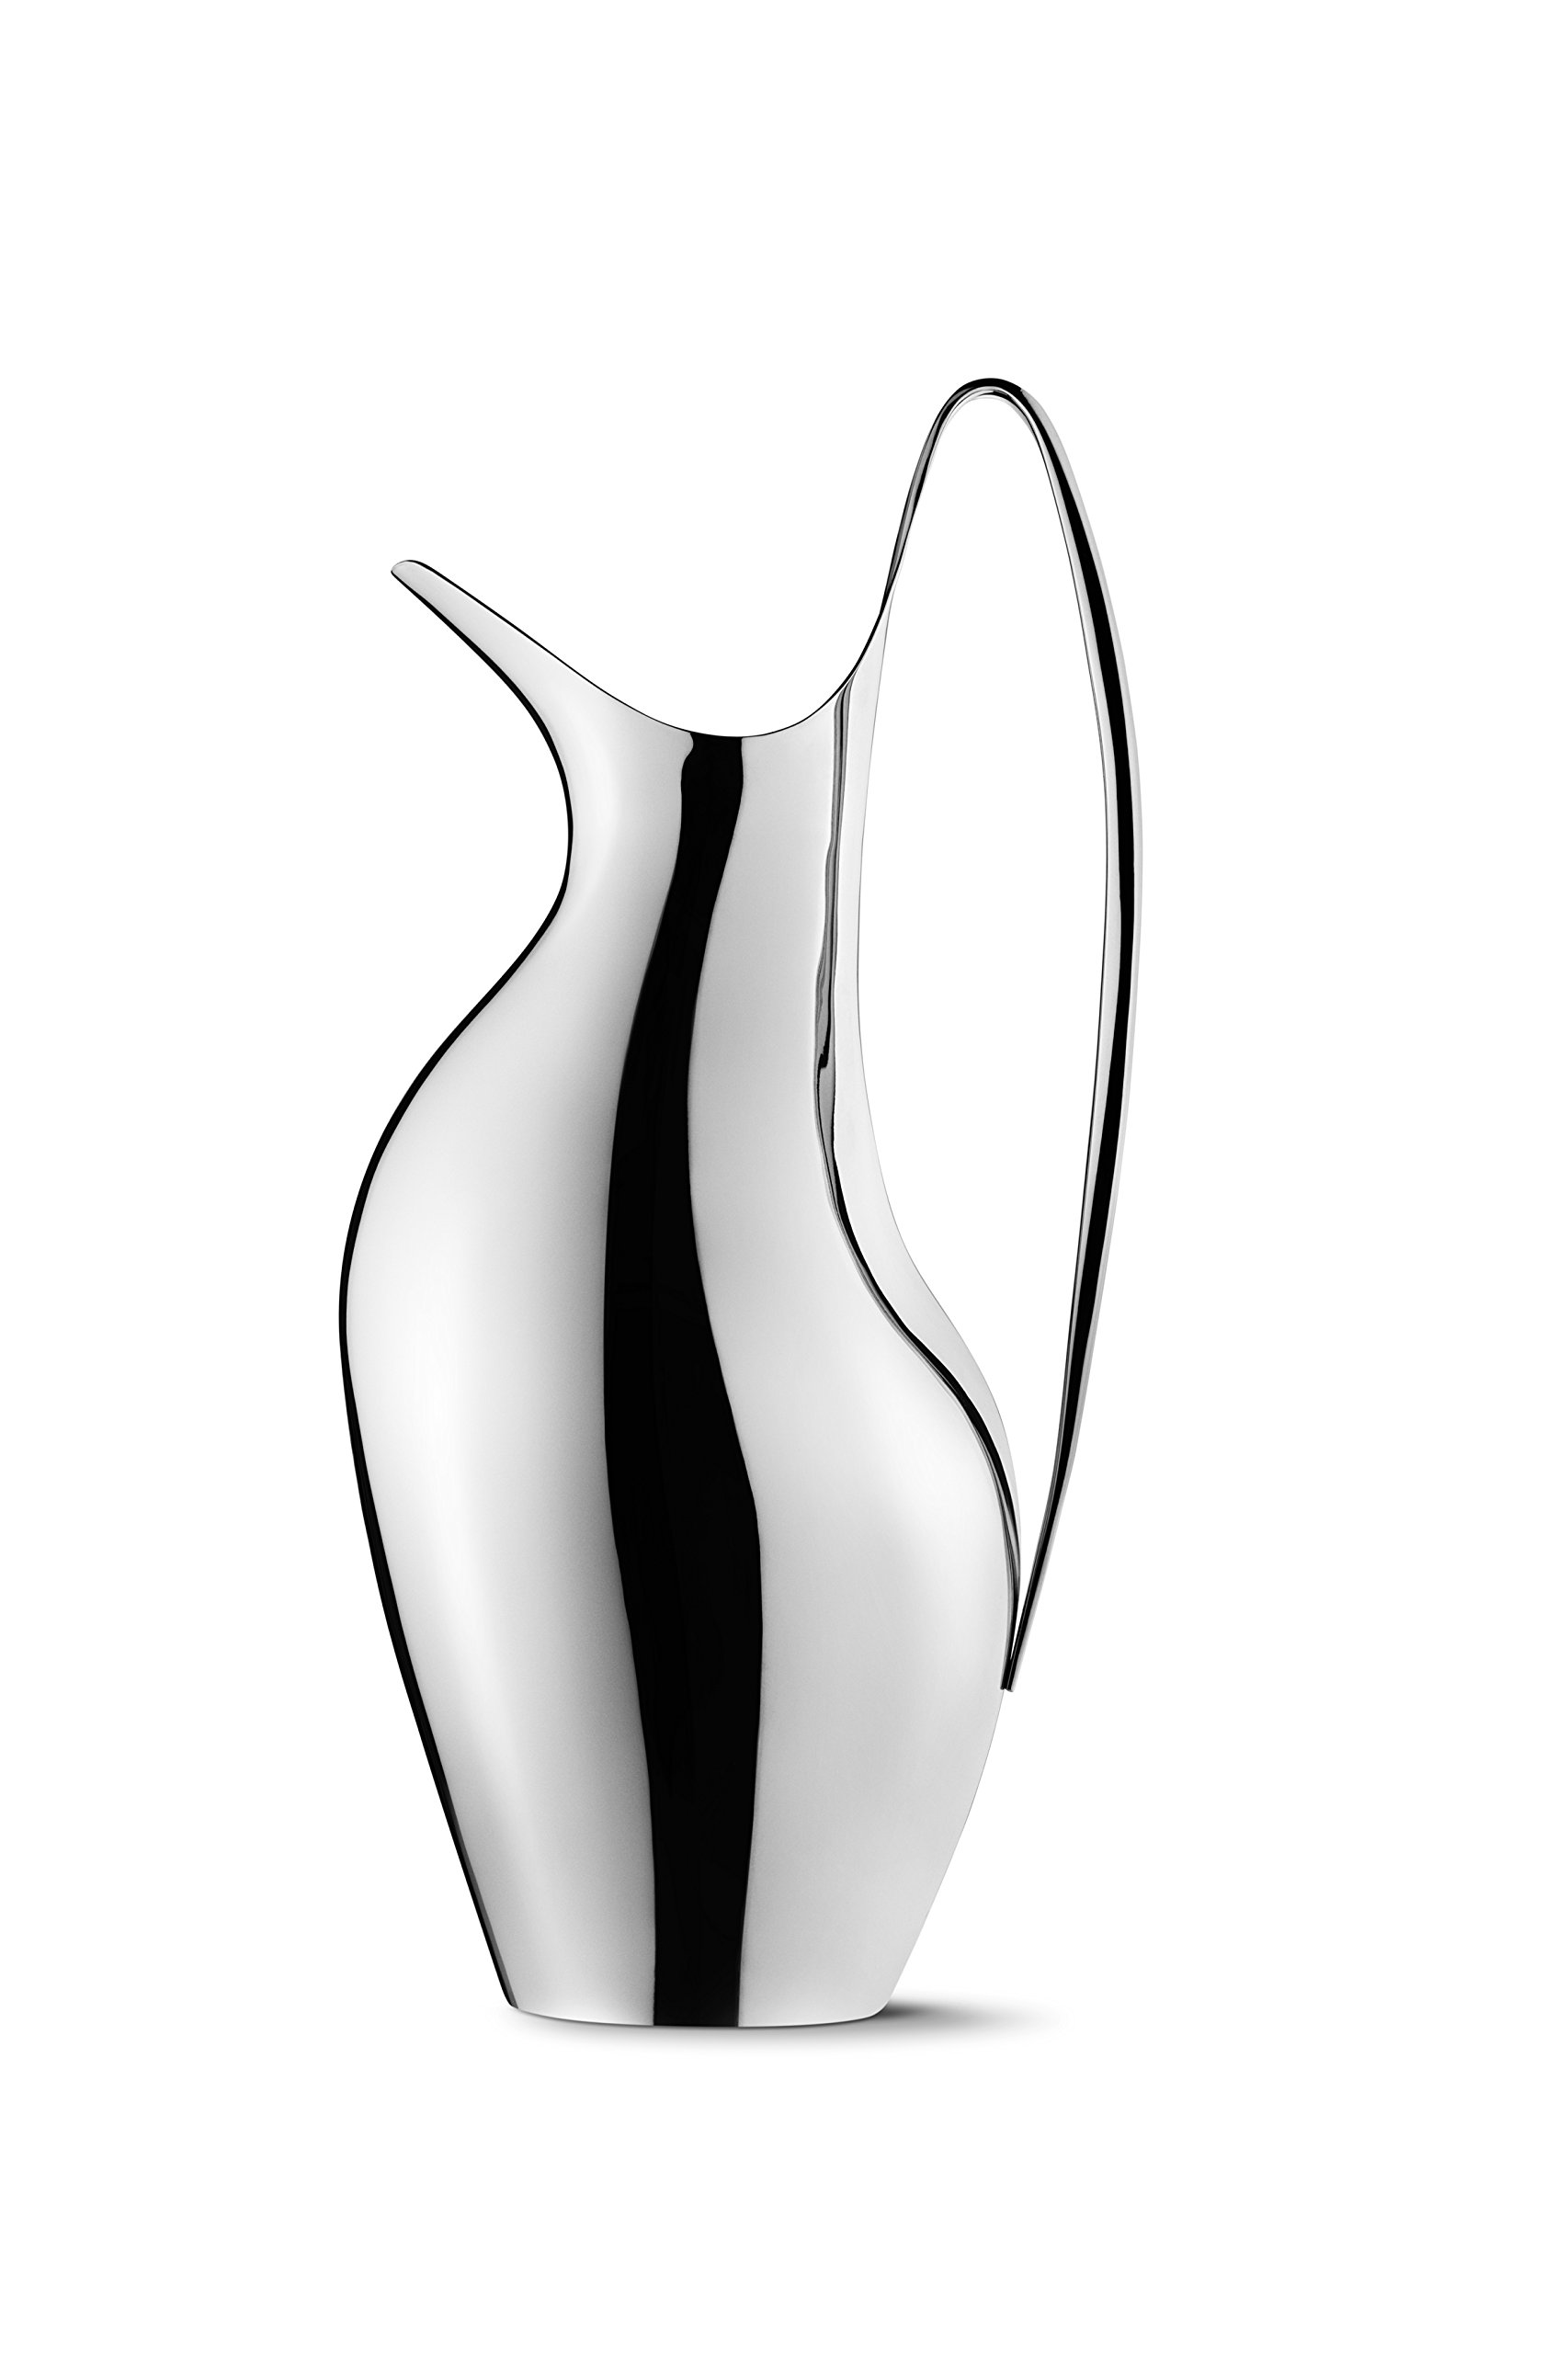 Georg Jensen Georg Jensen Henning Koppel Polished Steel Pitcher by Georg Jensen (Image #1)